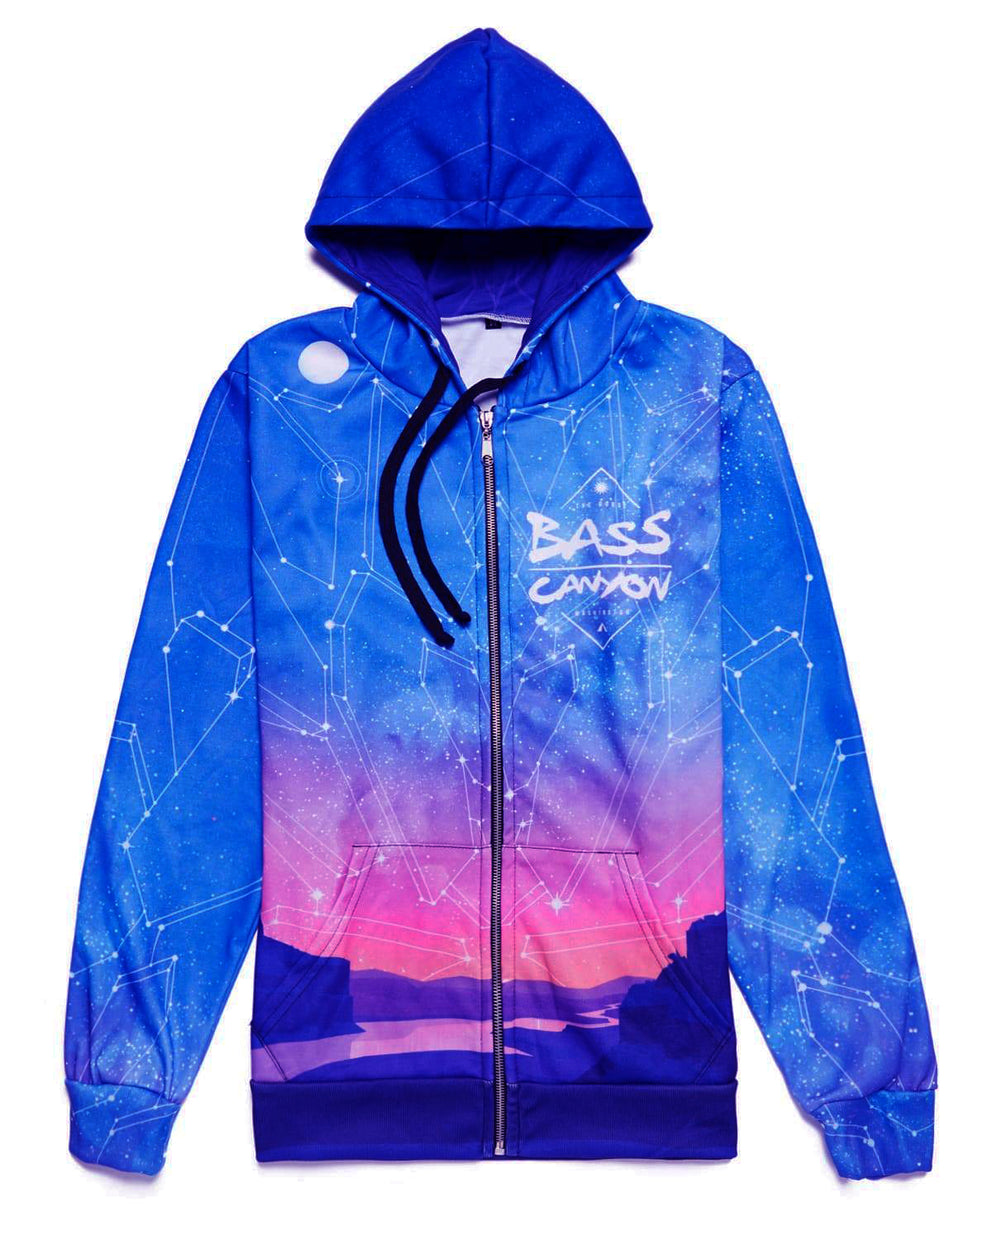 Official Bass Canyon 2018 'Sunset' Hoodie